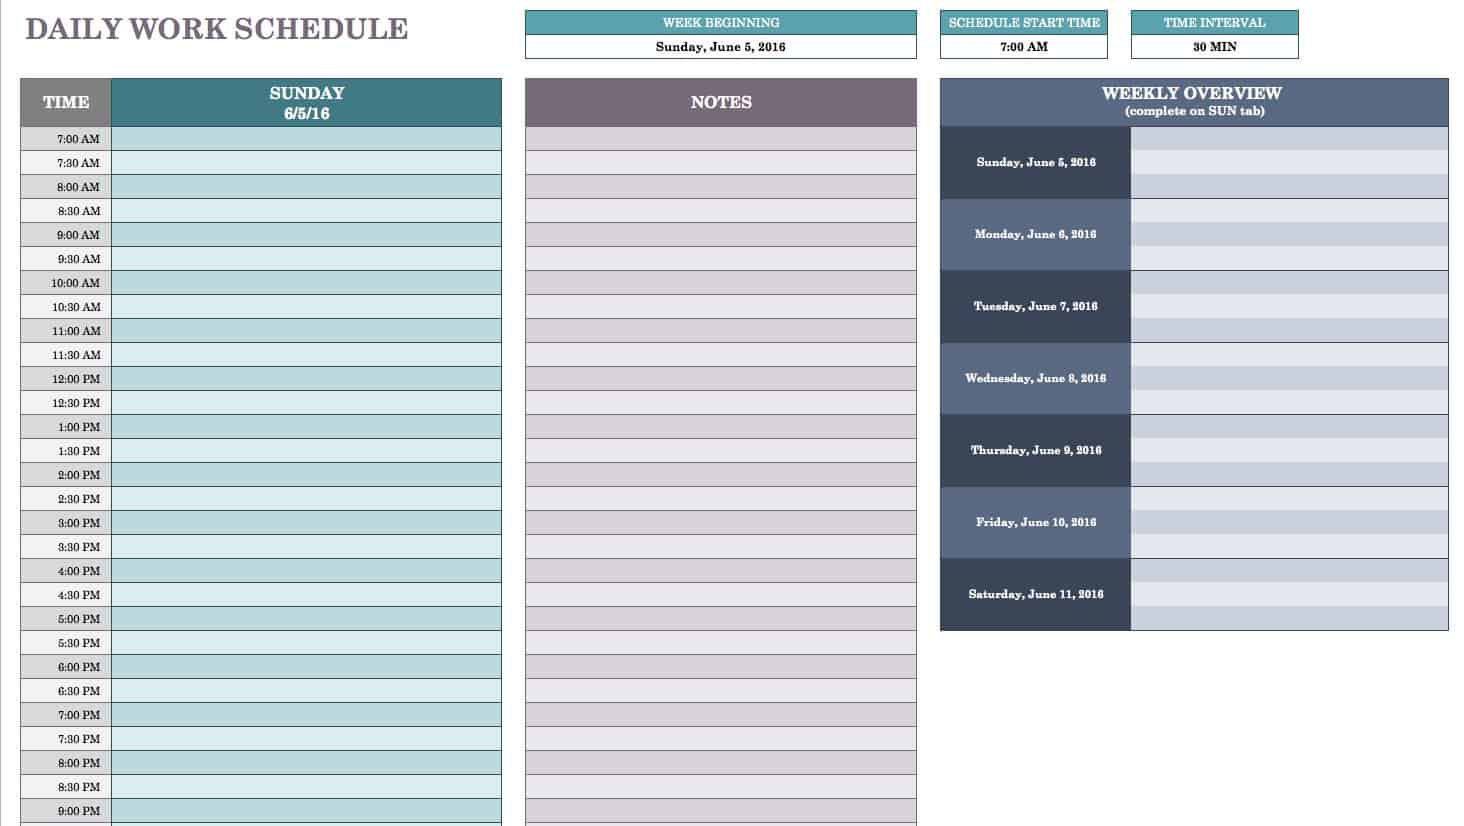 Free daily schedule templates for excel smartsheet daily work schedule template alramifo Image collections